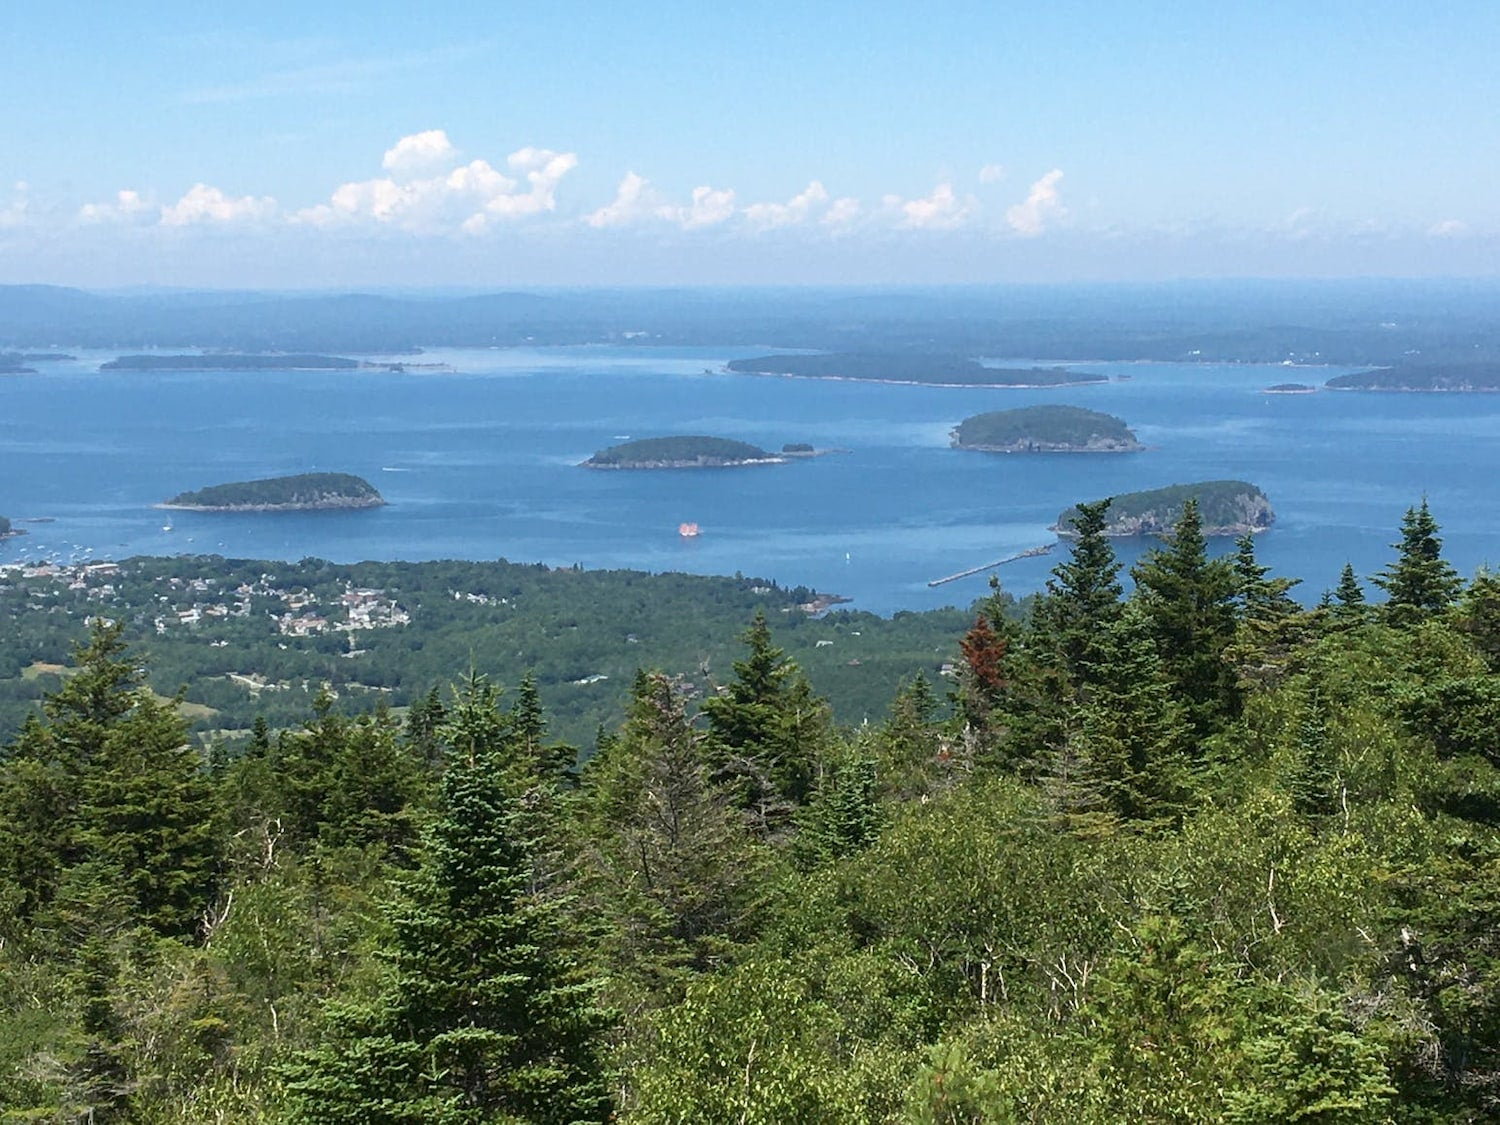 view of islands from a mountain